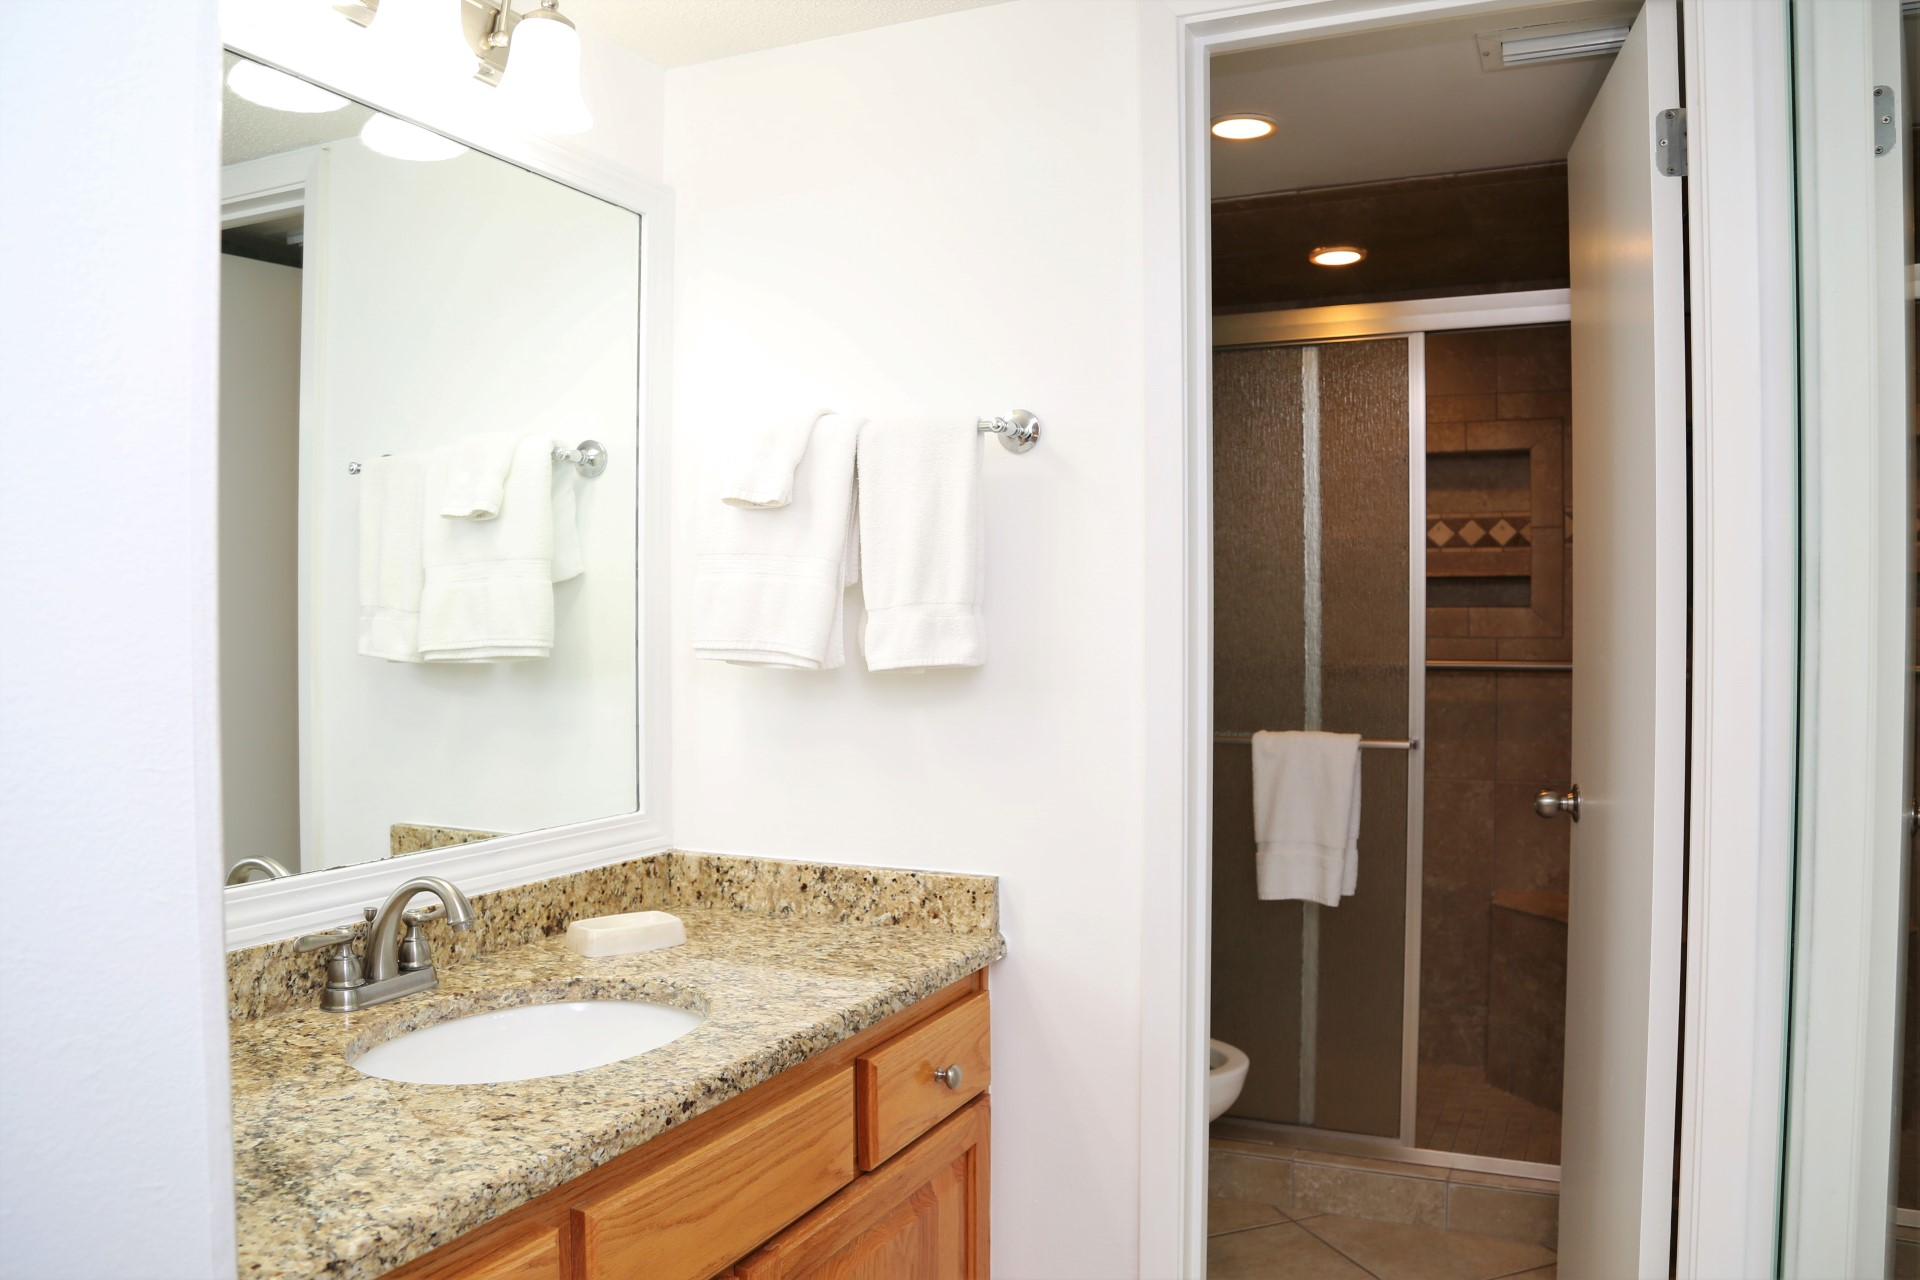 The master bathroom with granite counter vanity and renovate